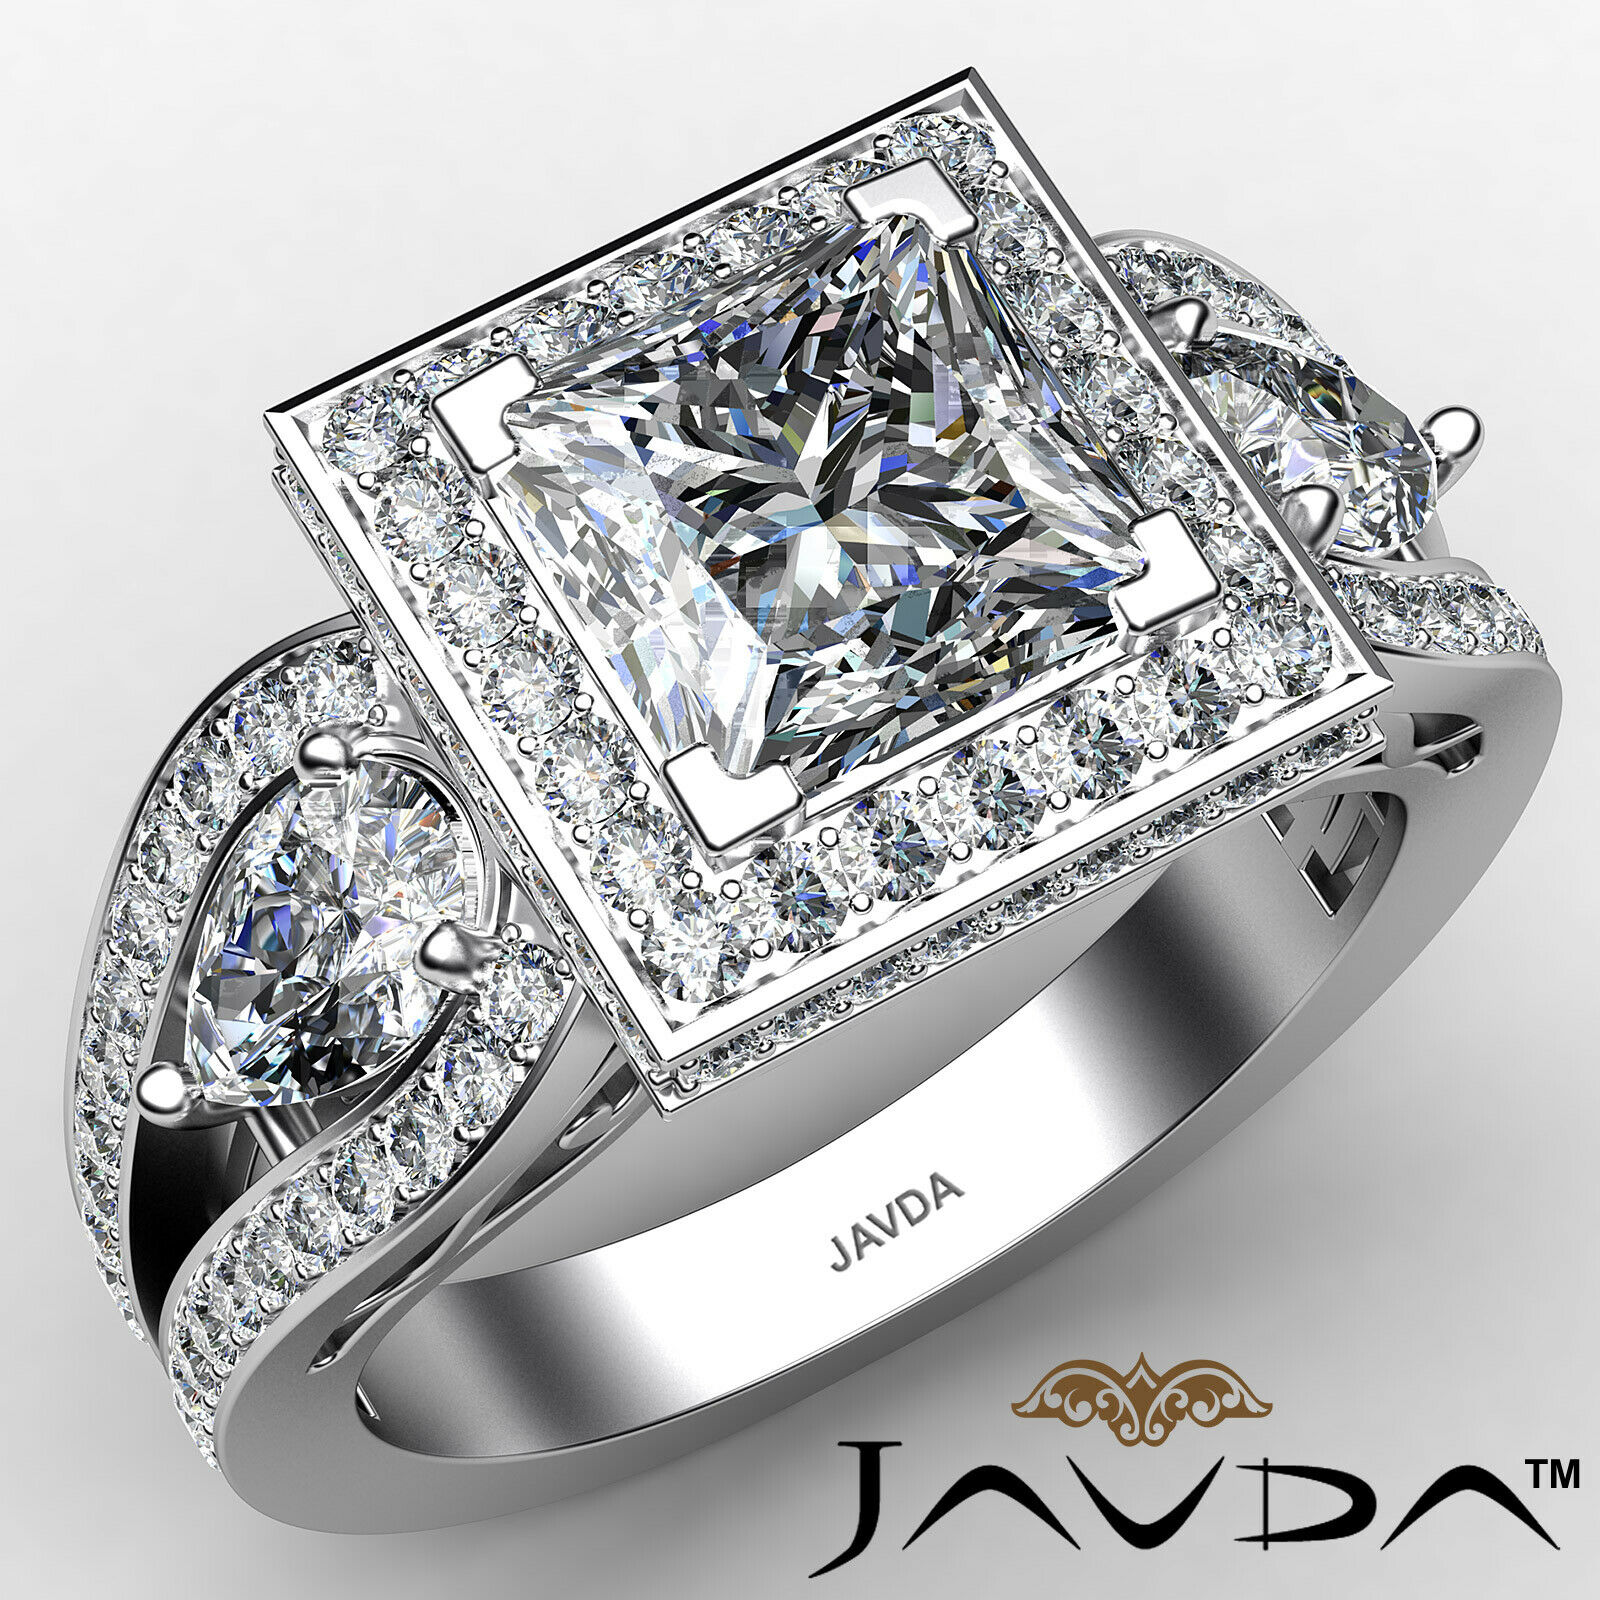 Halo Princess Diamond Engagement 3stone Ring GIA J Color & SI1 clarity 2.85 ctw